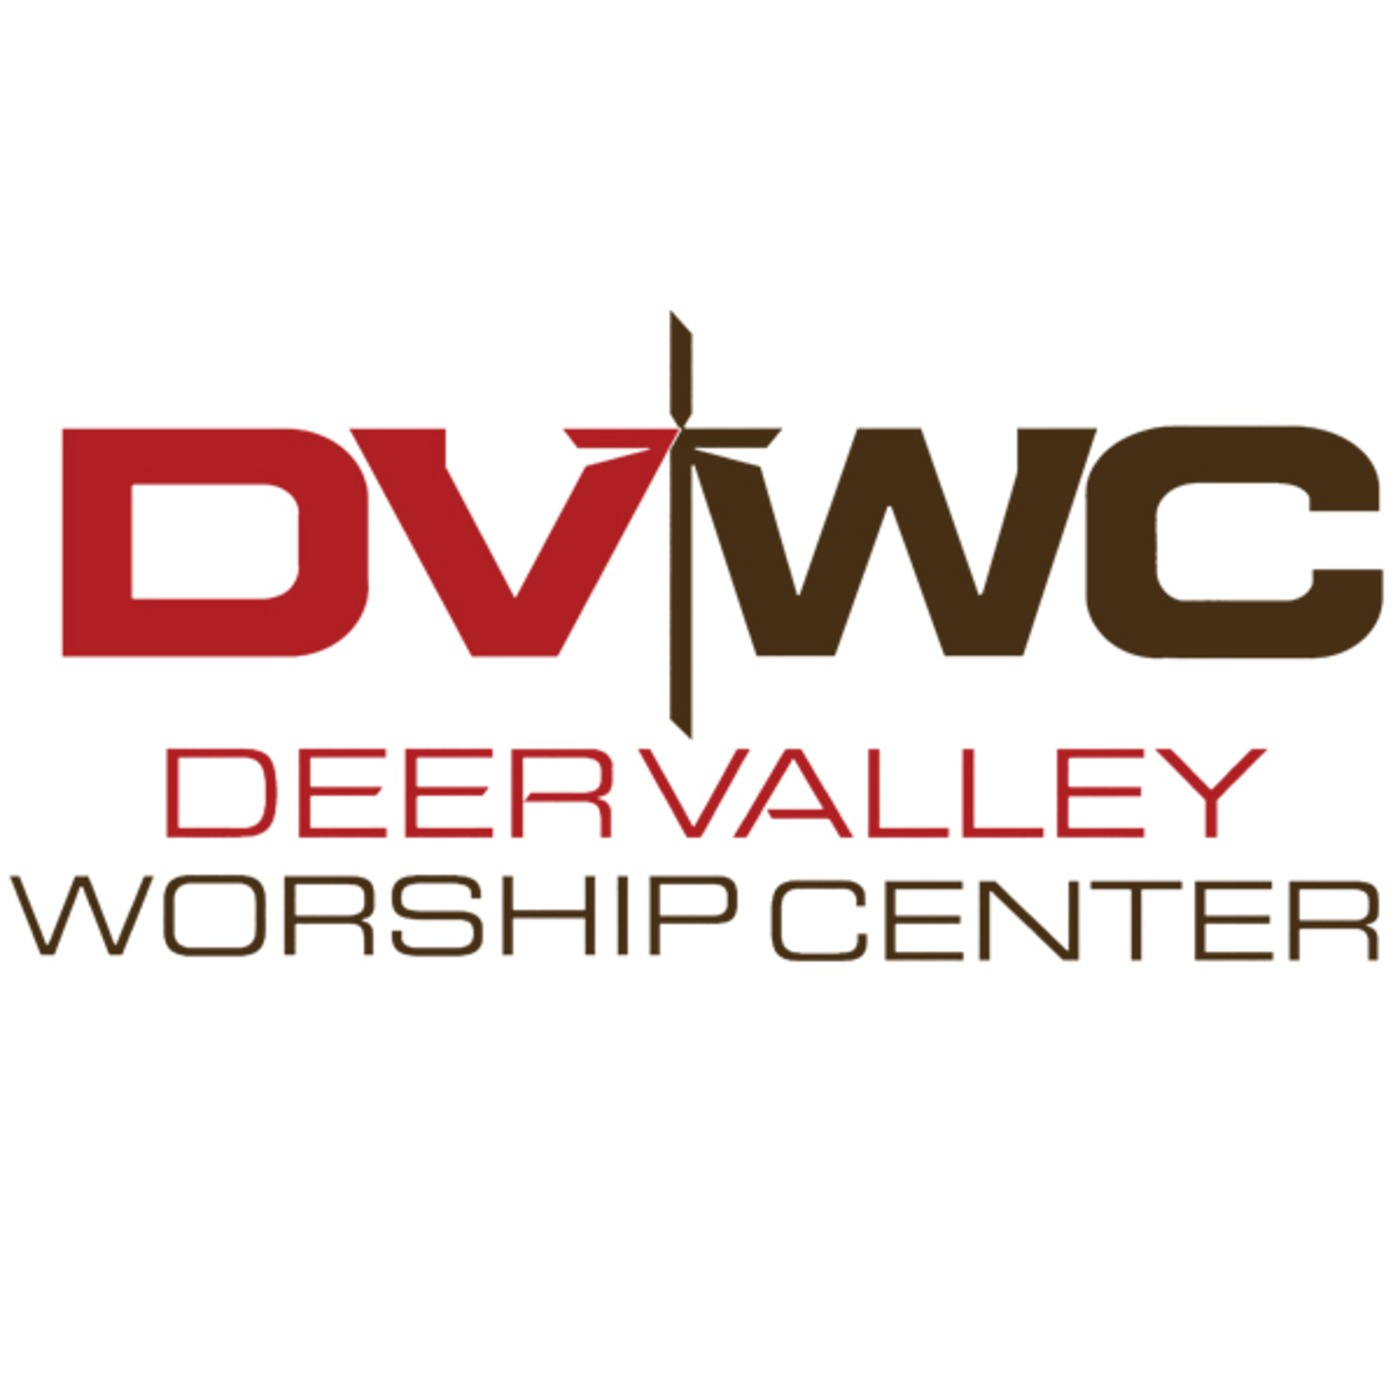 DVWC - Deer Valley Worship Center